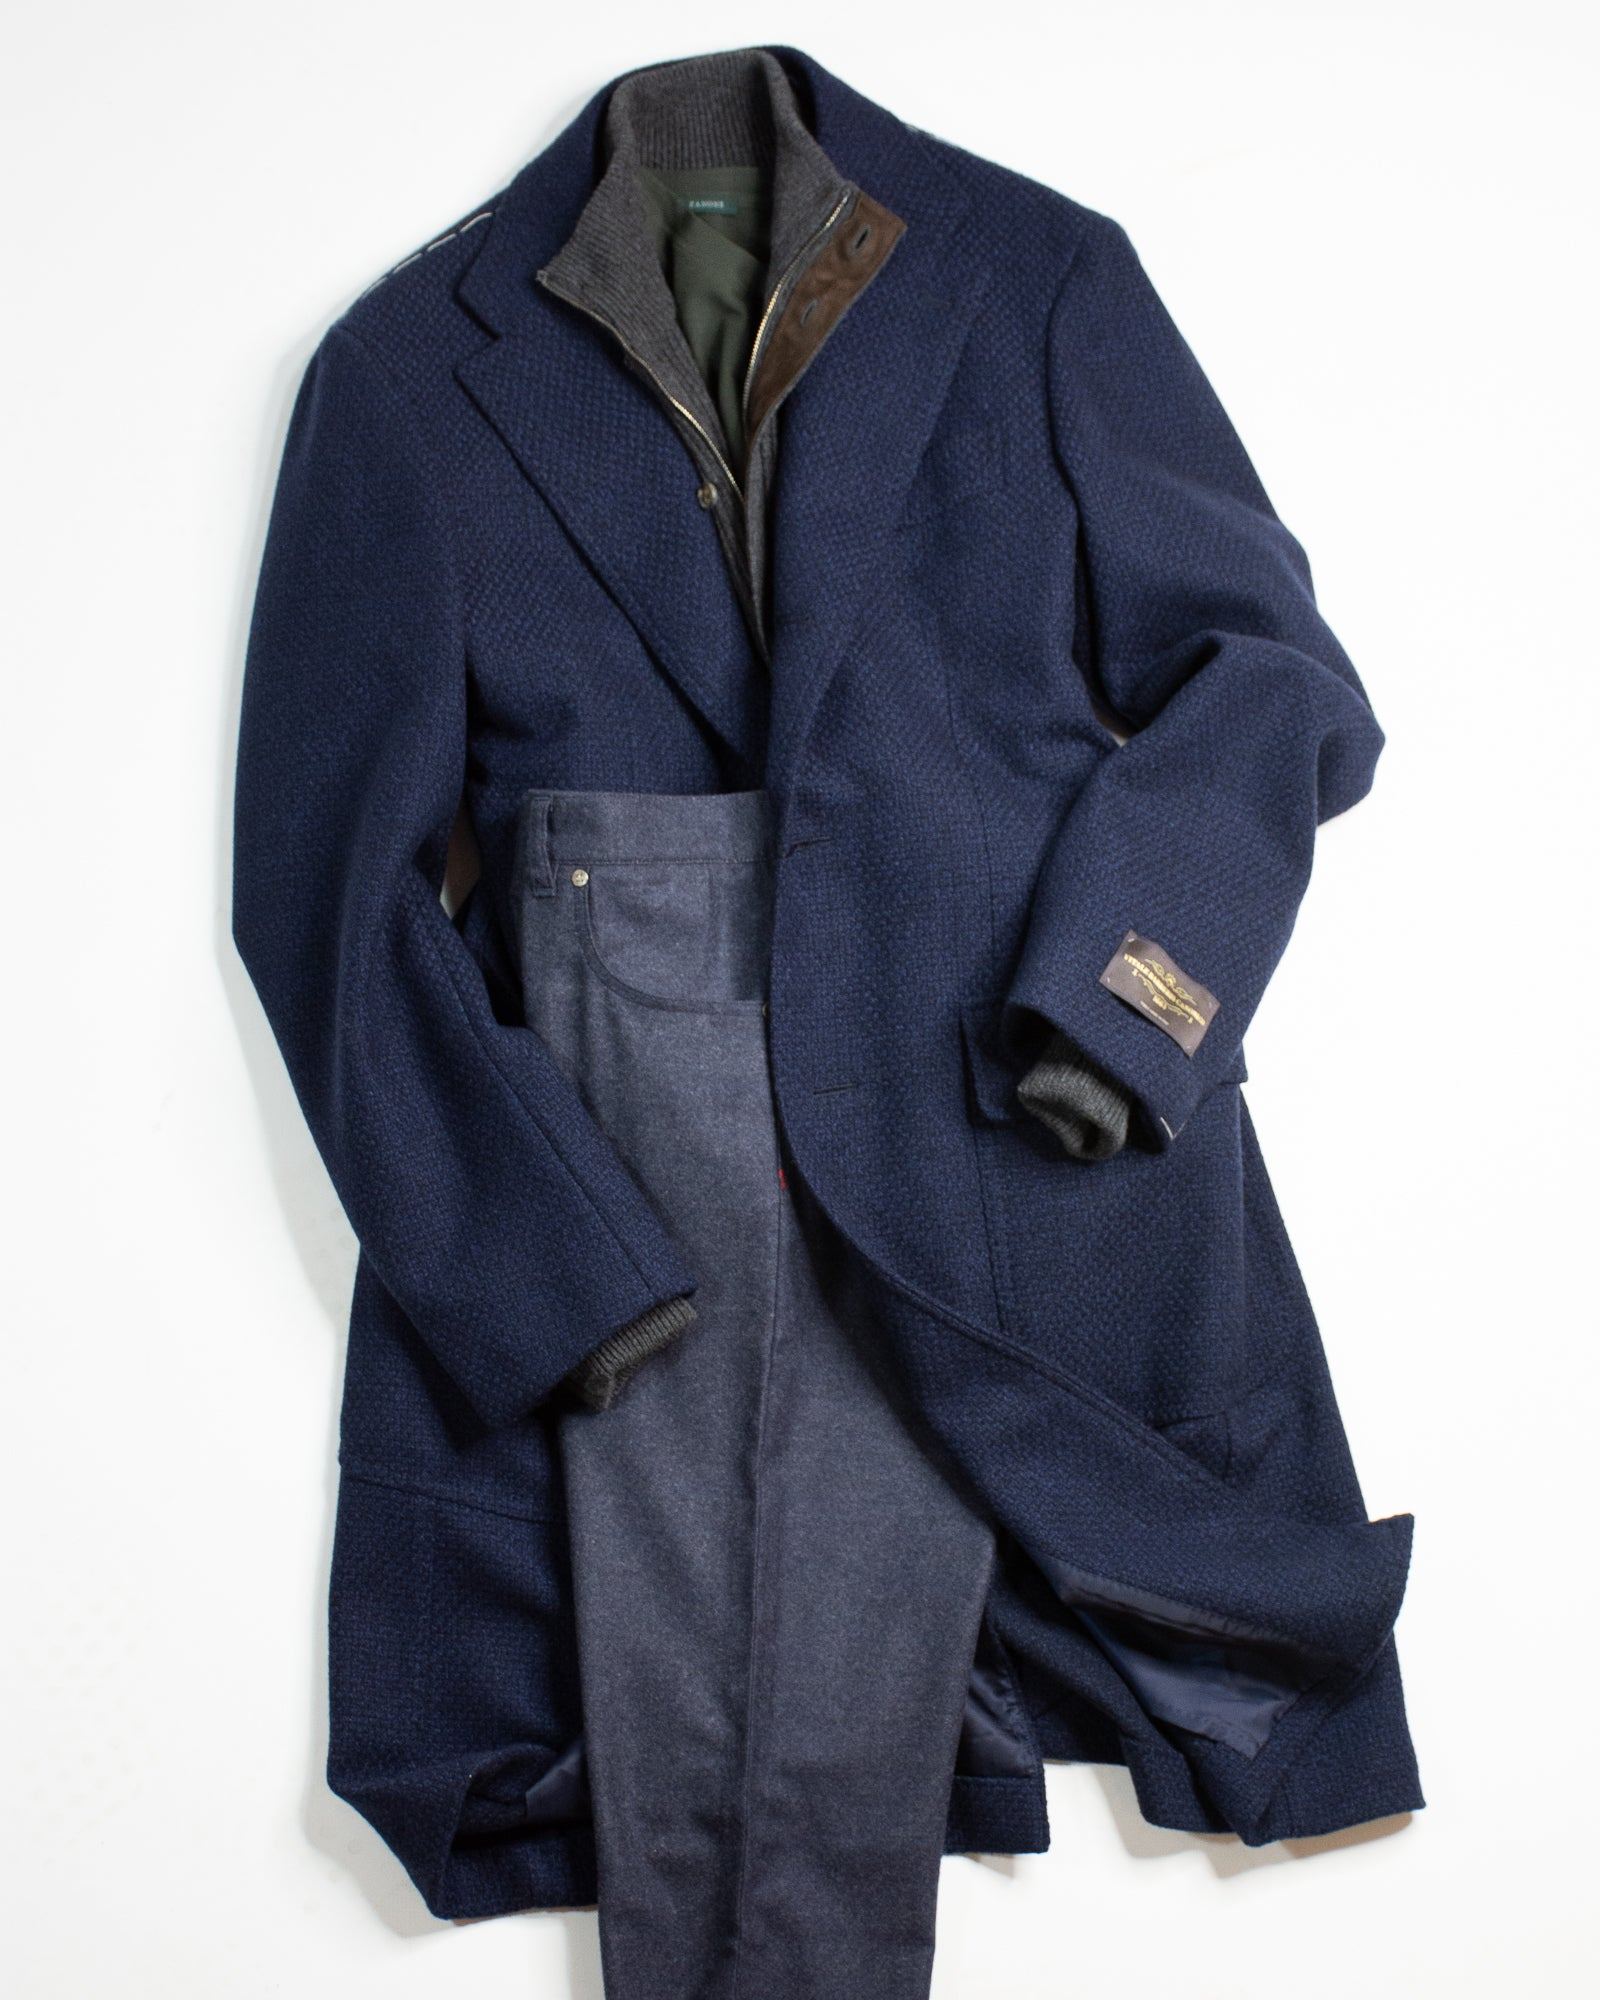 RINGJACKET Single Breasted Patch Pocket Overcoat